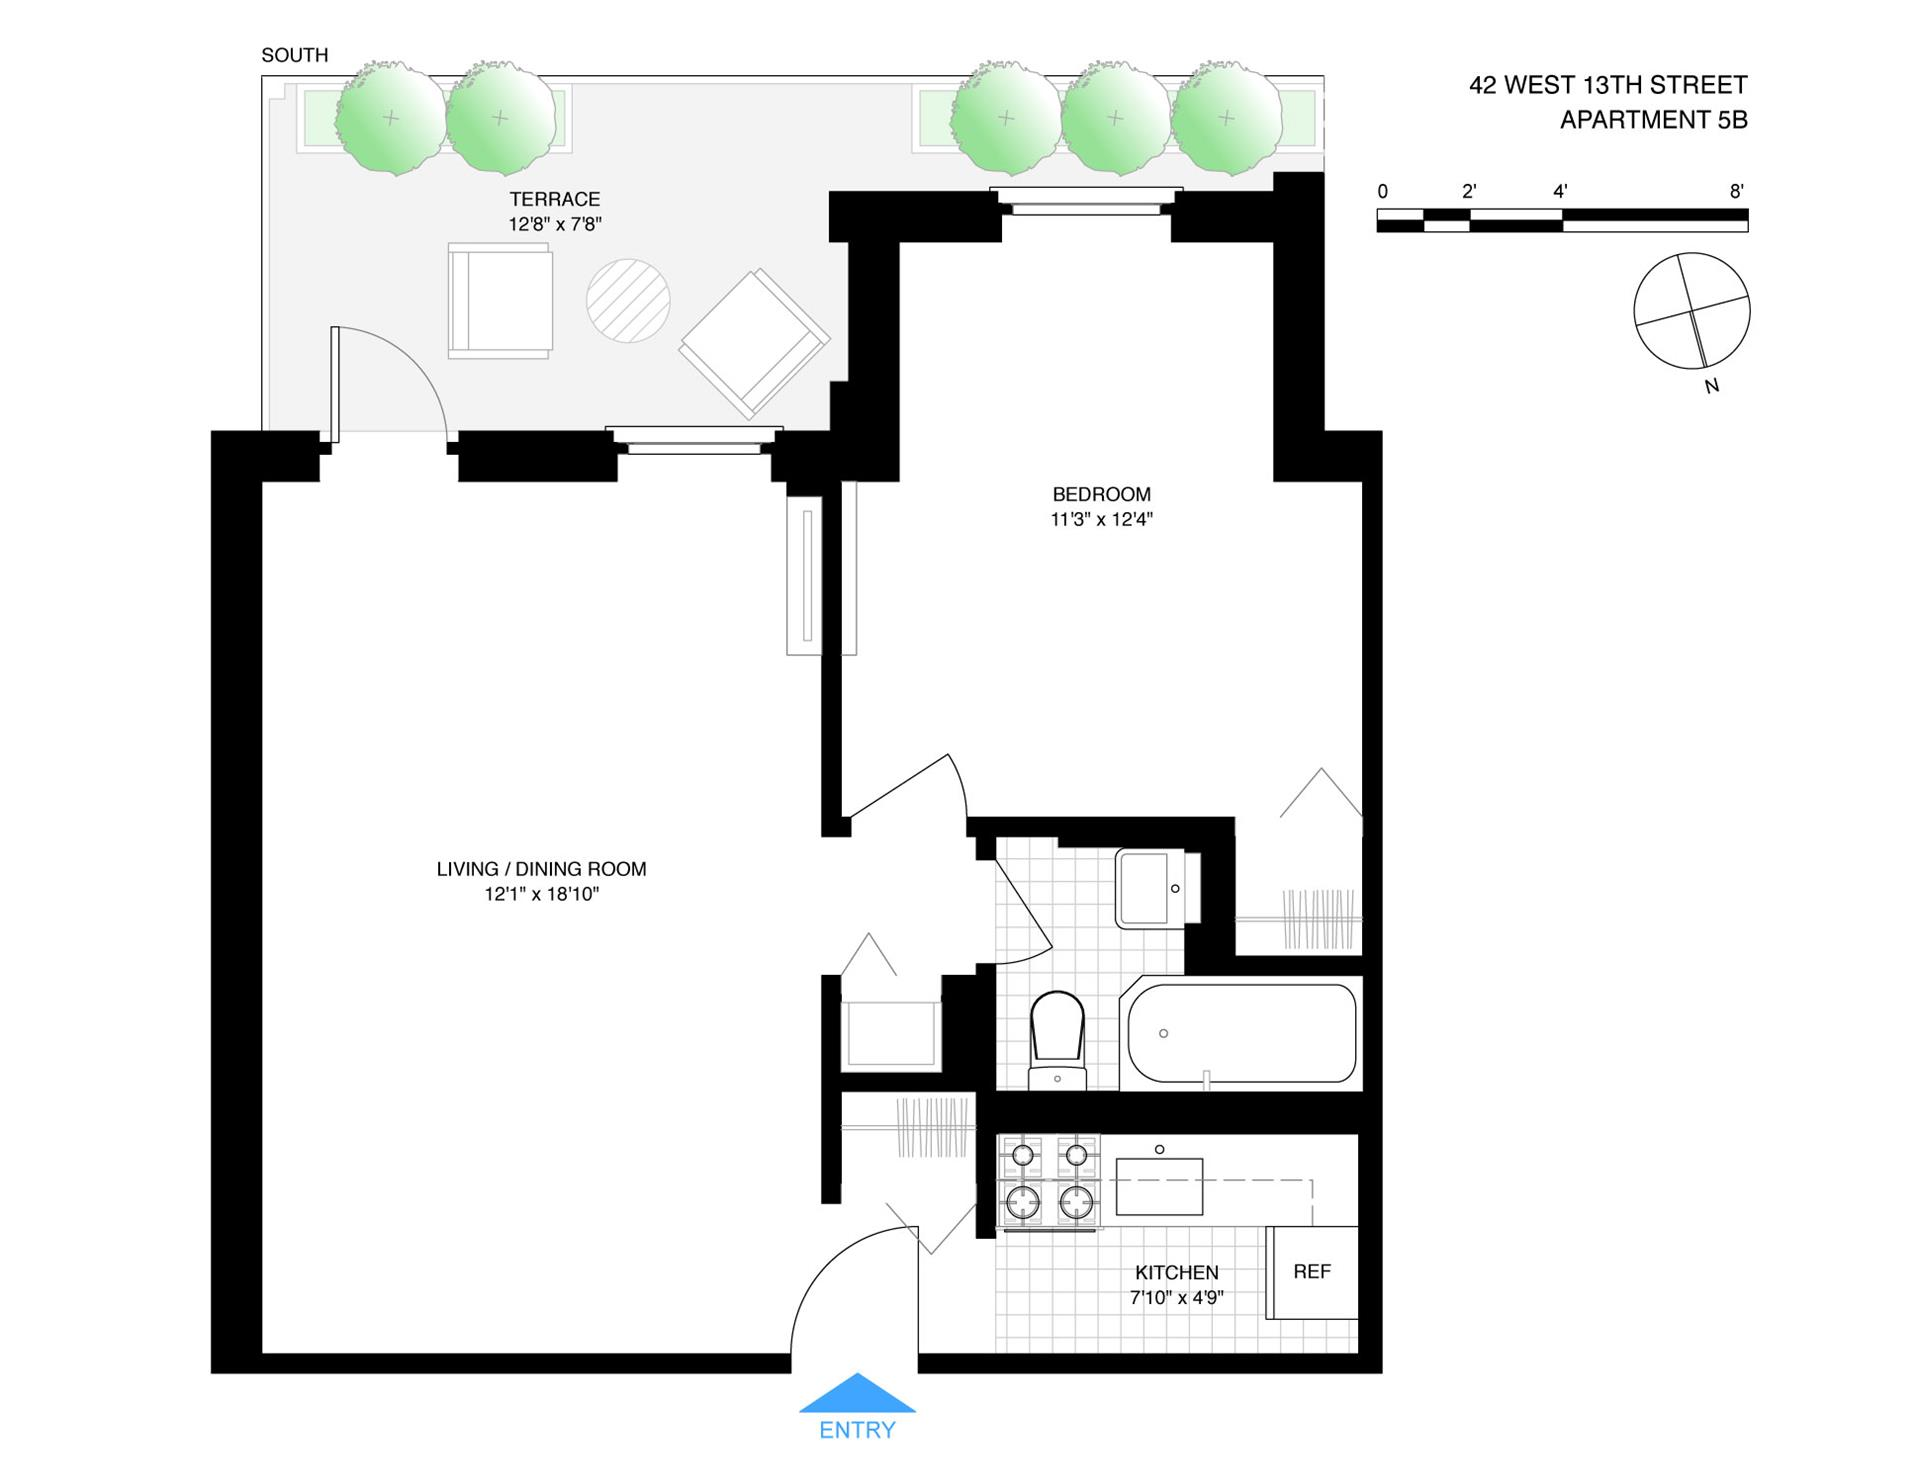 Floor plan of 42 West 13th Street, 5B - Greenwich Village, New York